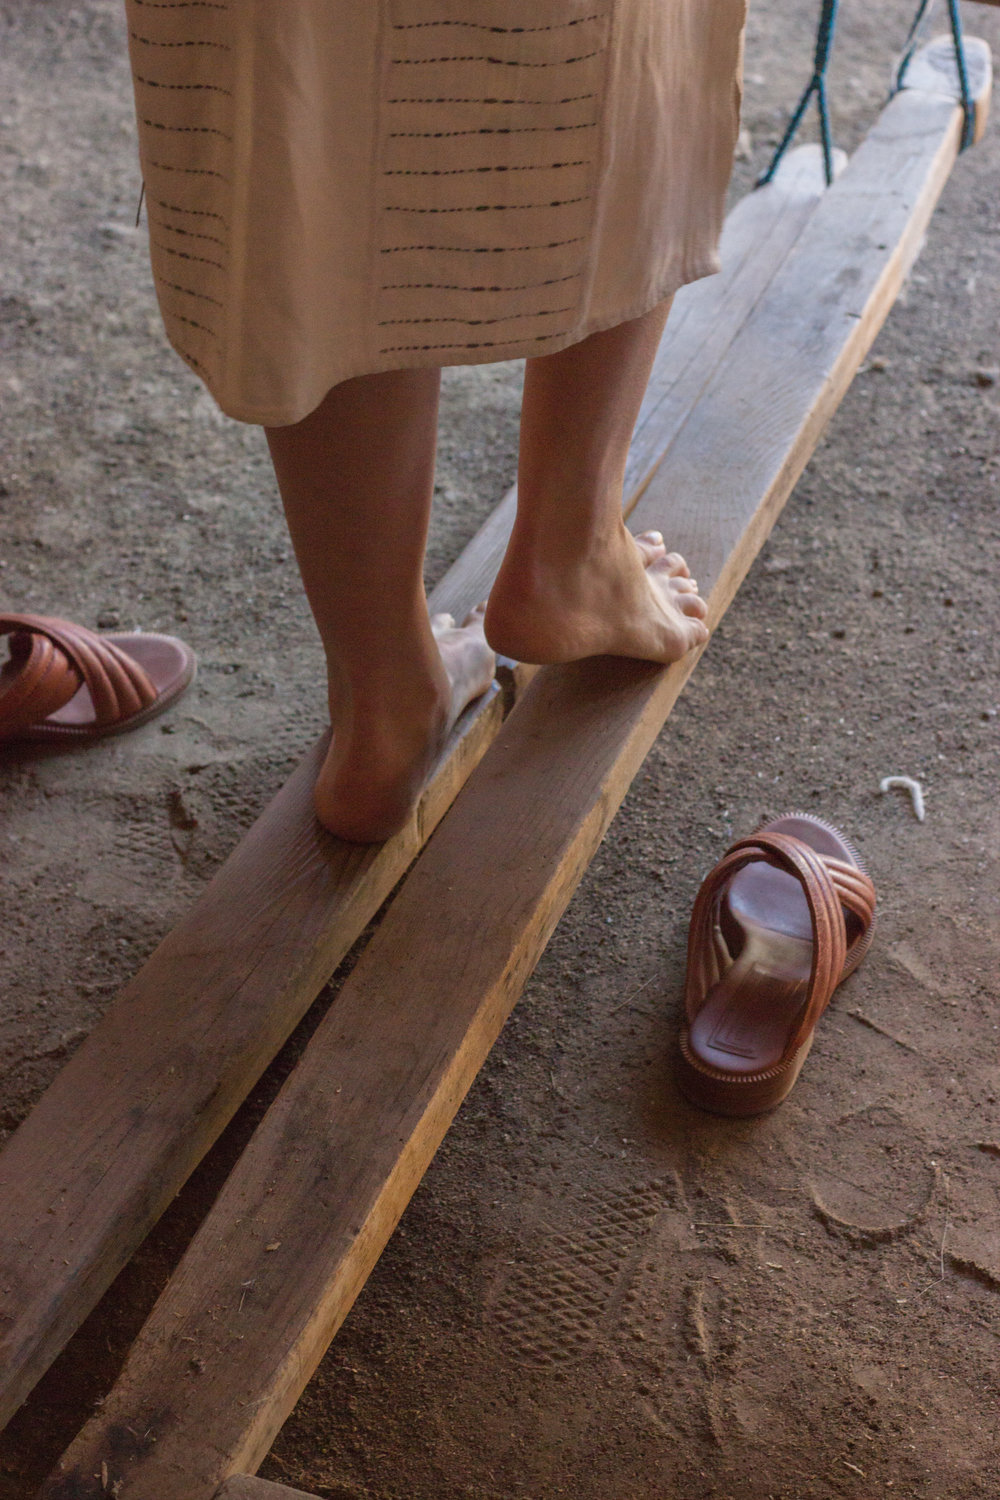 emily katz footloom weaving in oaxaca by leah pellegrini for thread caravan.jpg